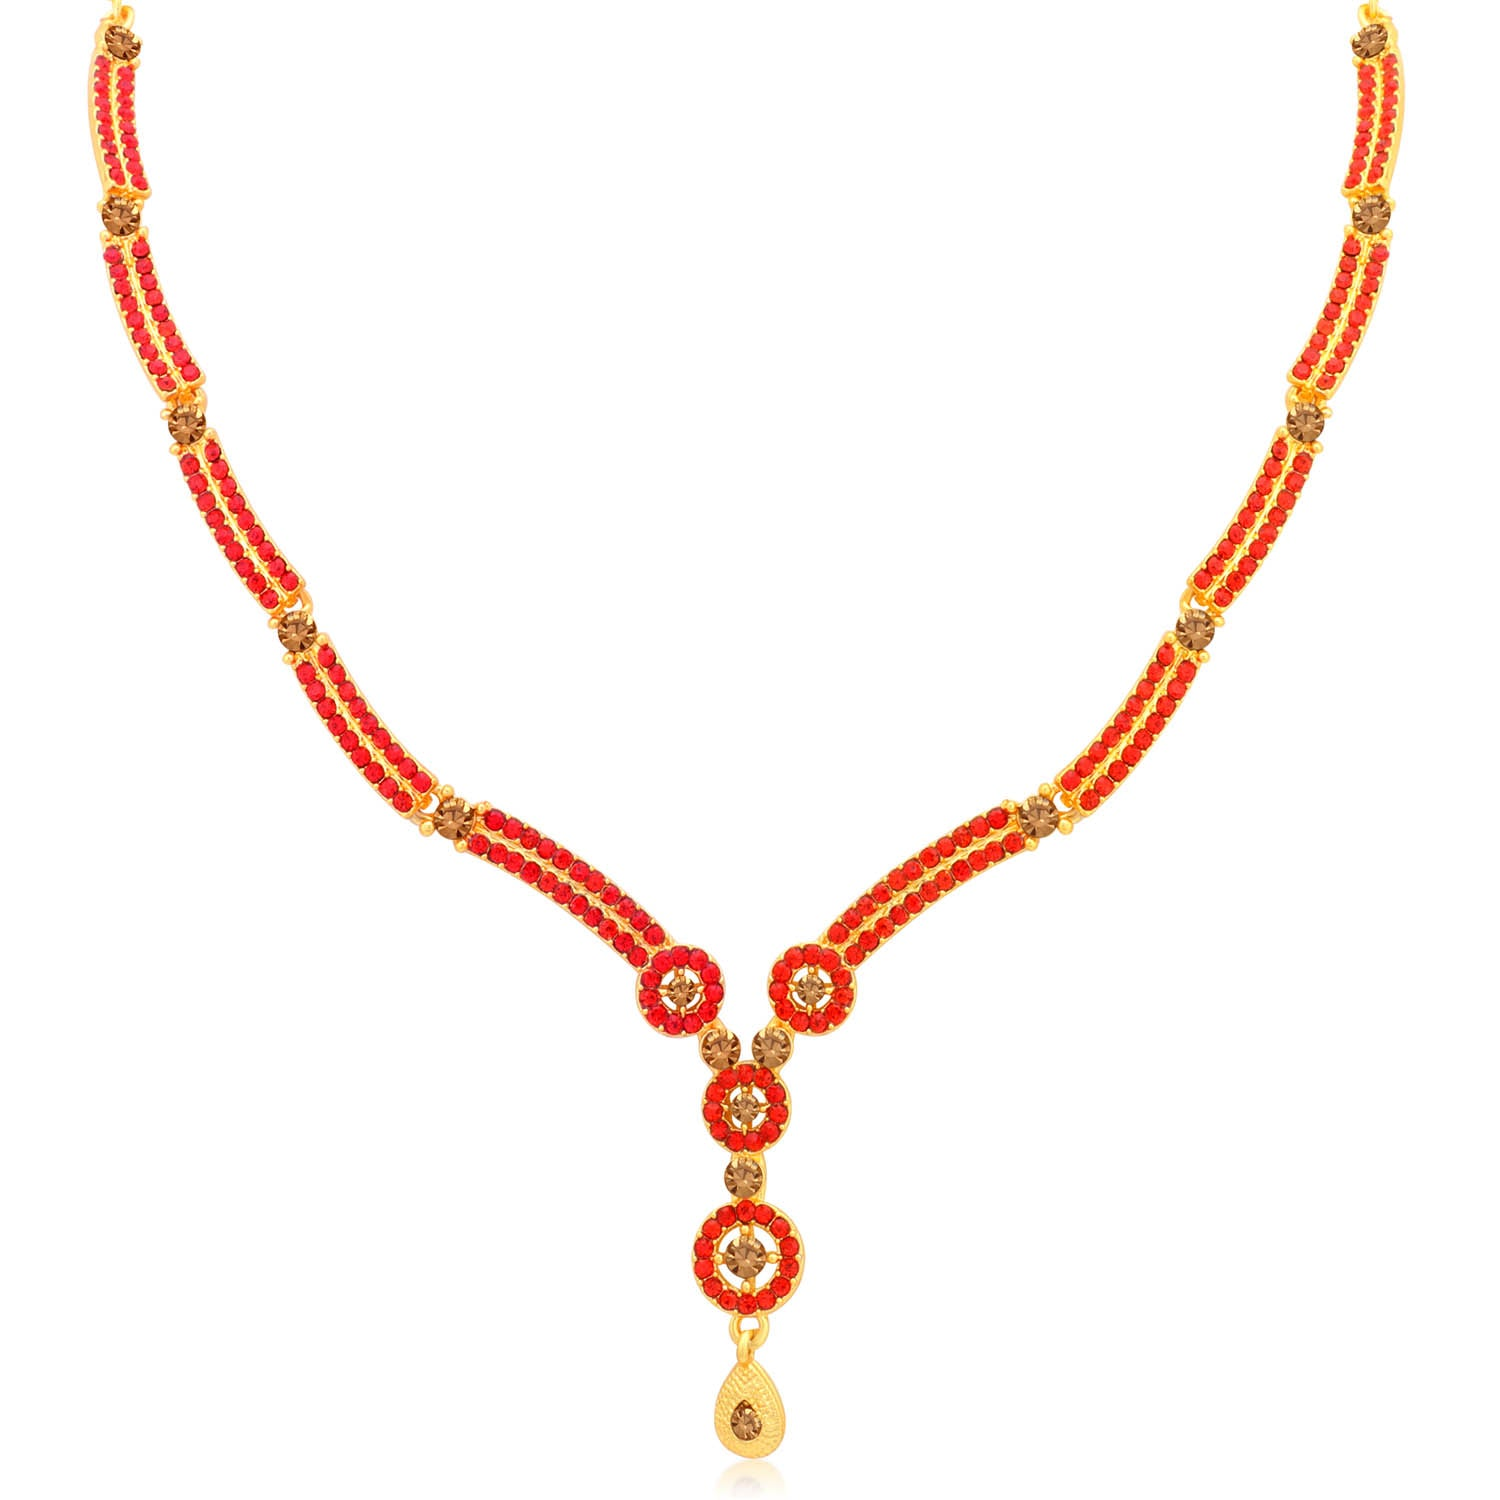 Sukkhi Blossomy LCT and Red Stone Gold Plated Pearl Necklace Set for Women-SUKKHI1-Necklace Set